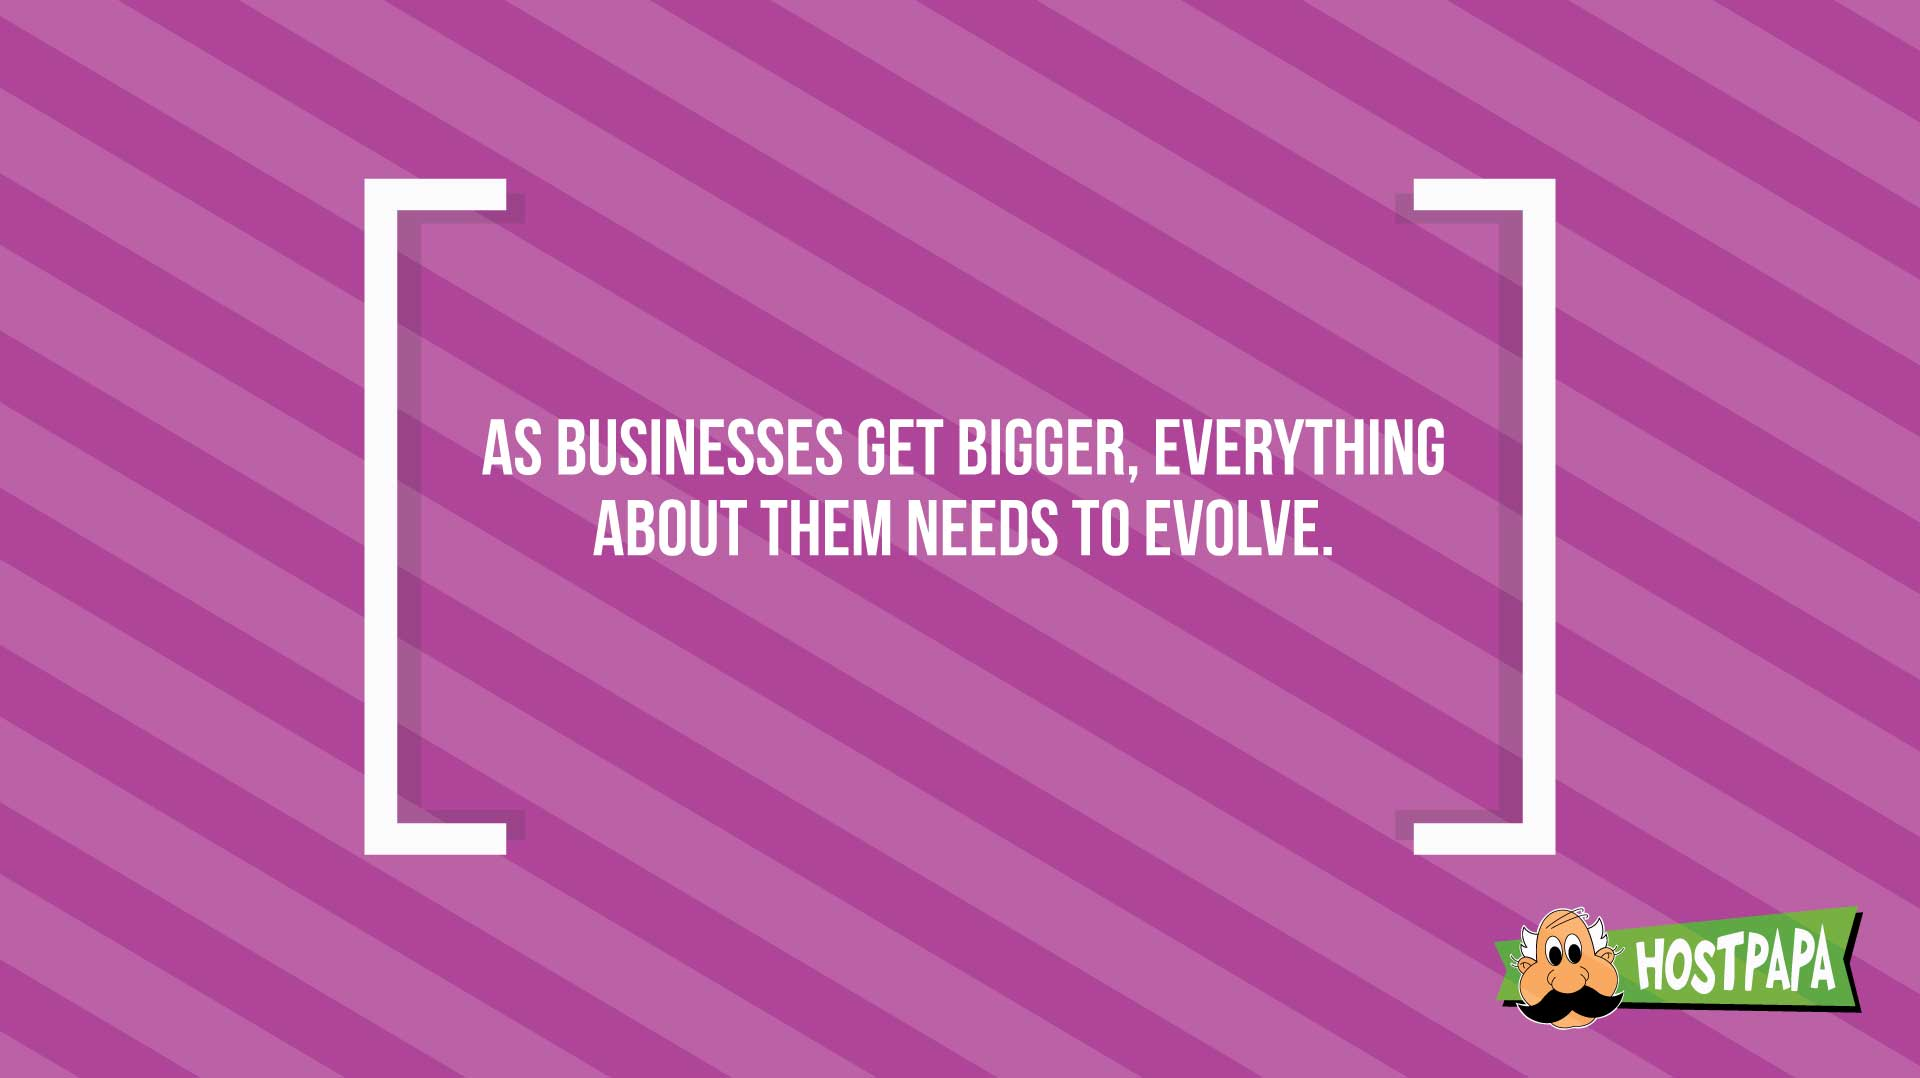 As businesses get bigger, everything about them needs to evolve